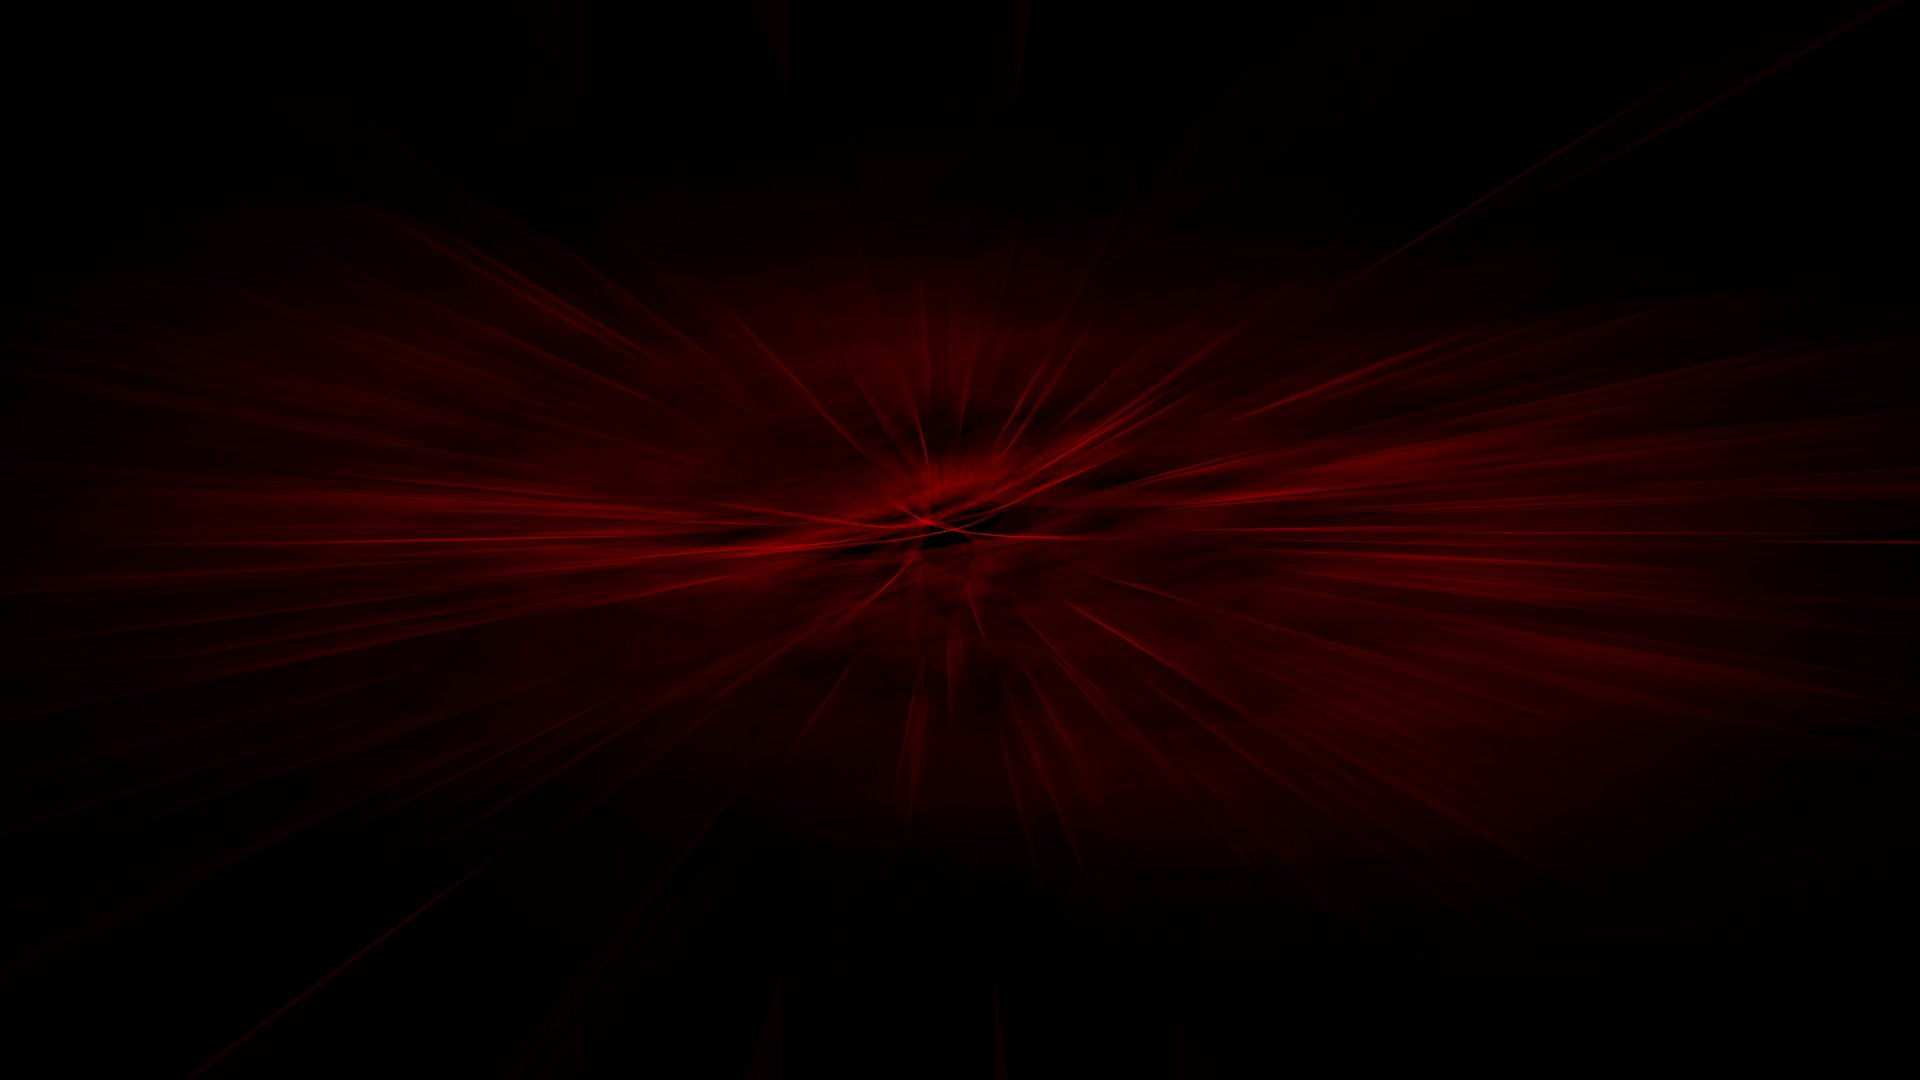 Red Abstract wallpaper - 608313